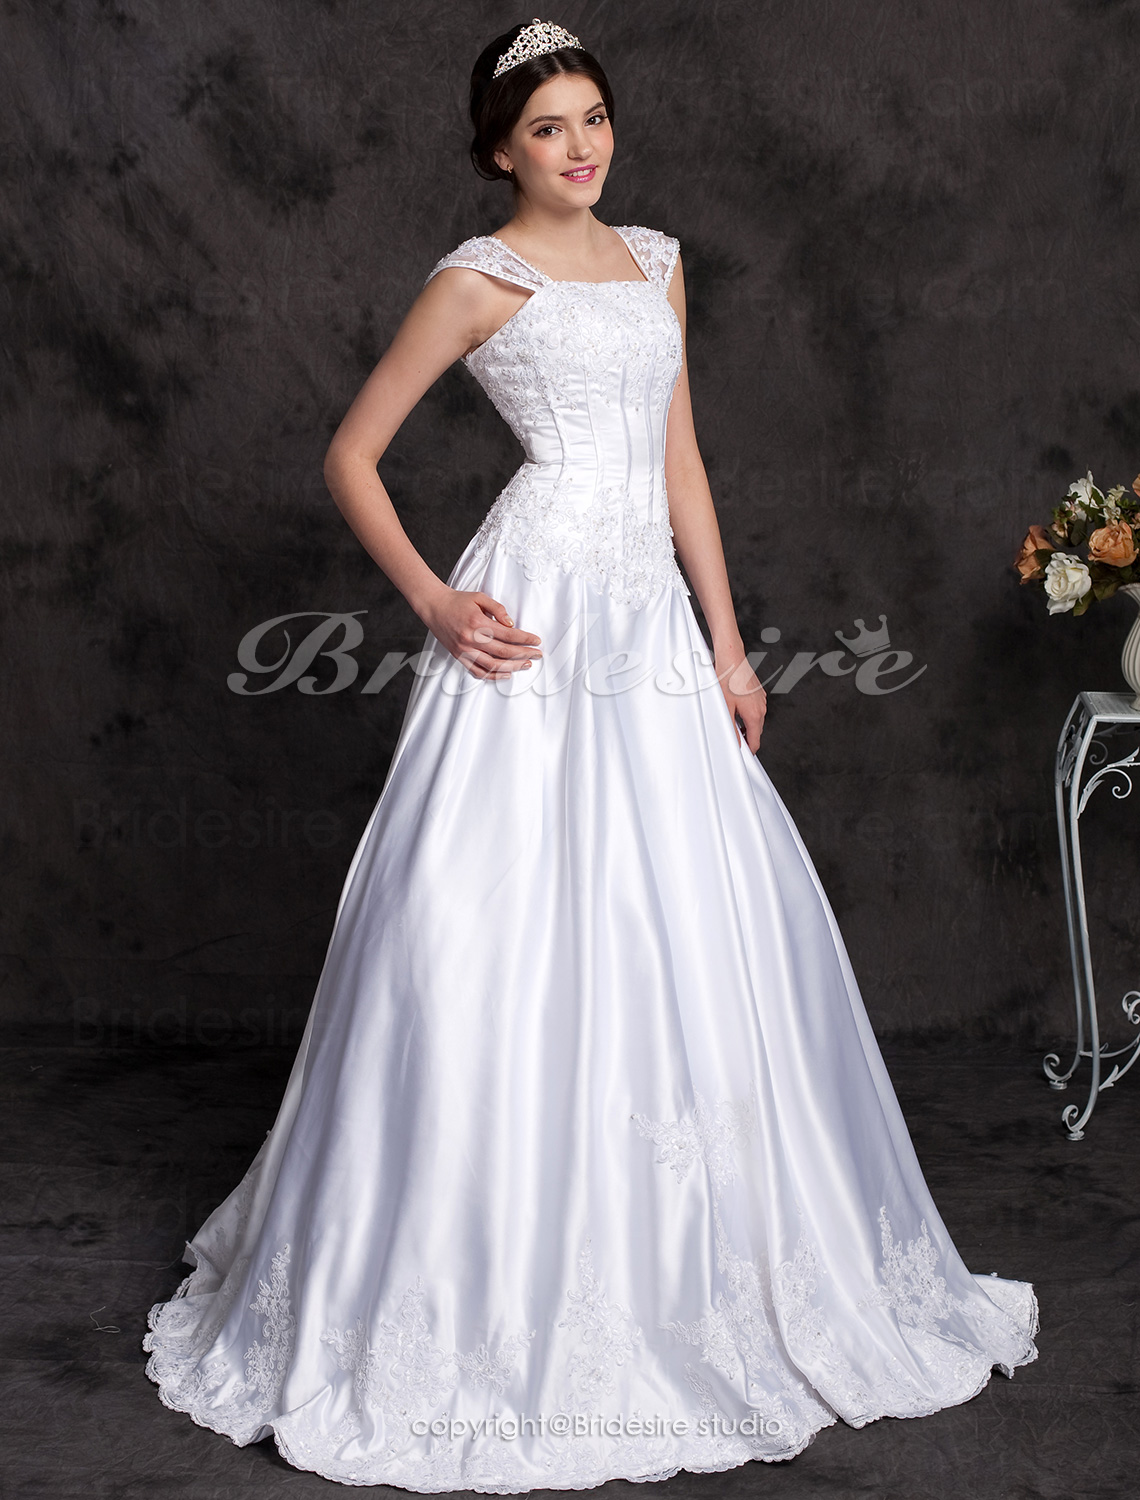 A-line Princess Satin Floor-length Wedding Dress With Beaded Appliques